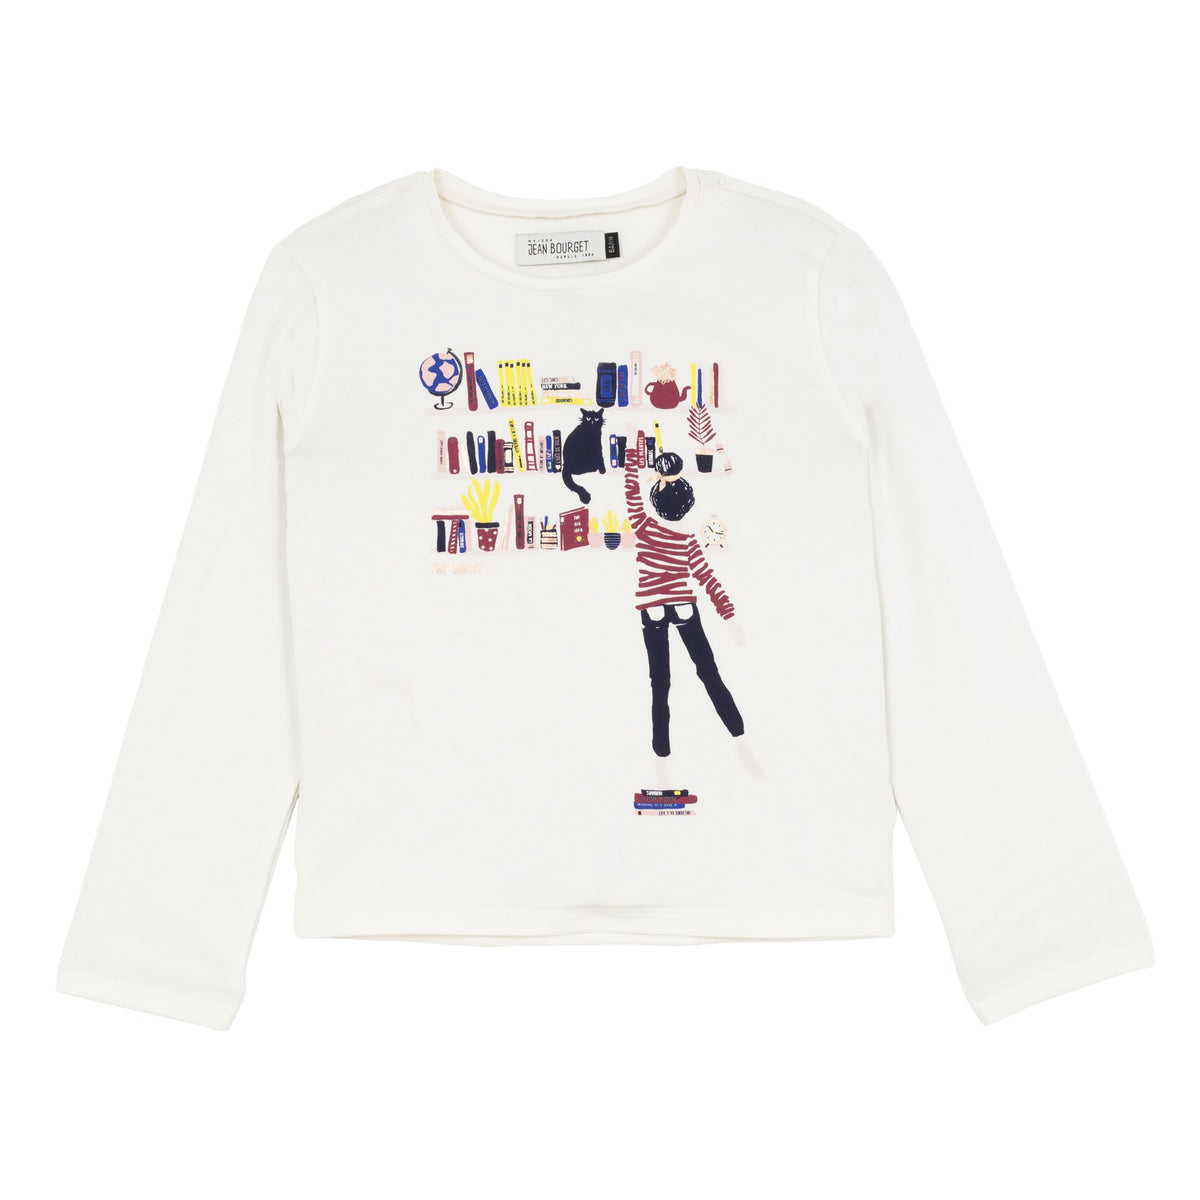 Jean Bourget ivory cotton-jersey long-sleeved tee is printed with a graphic and colorful pattern inspired by the bookstore universe.